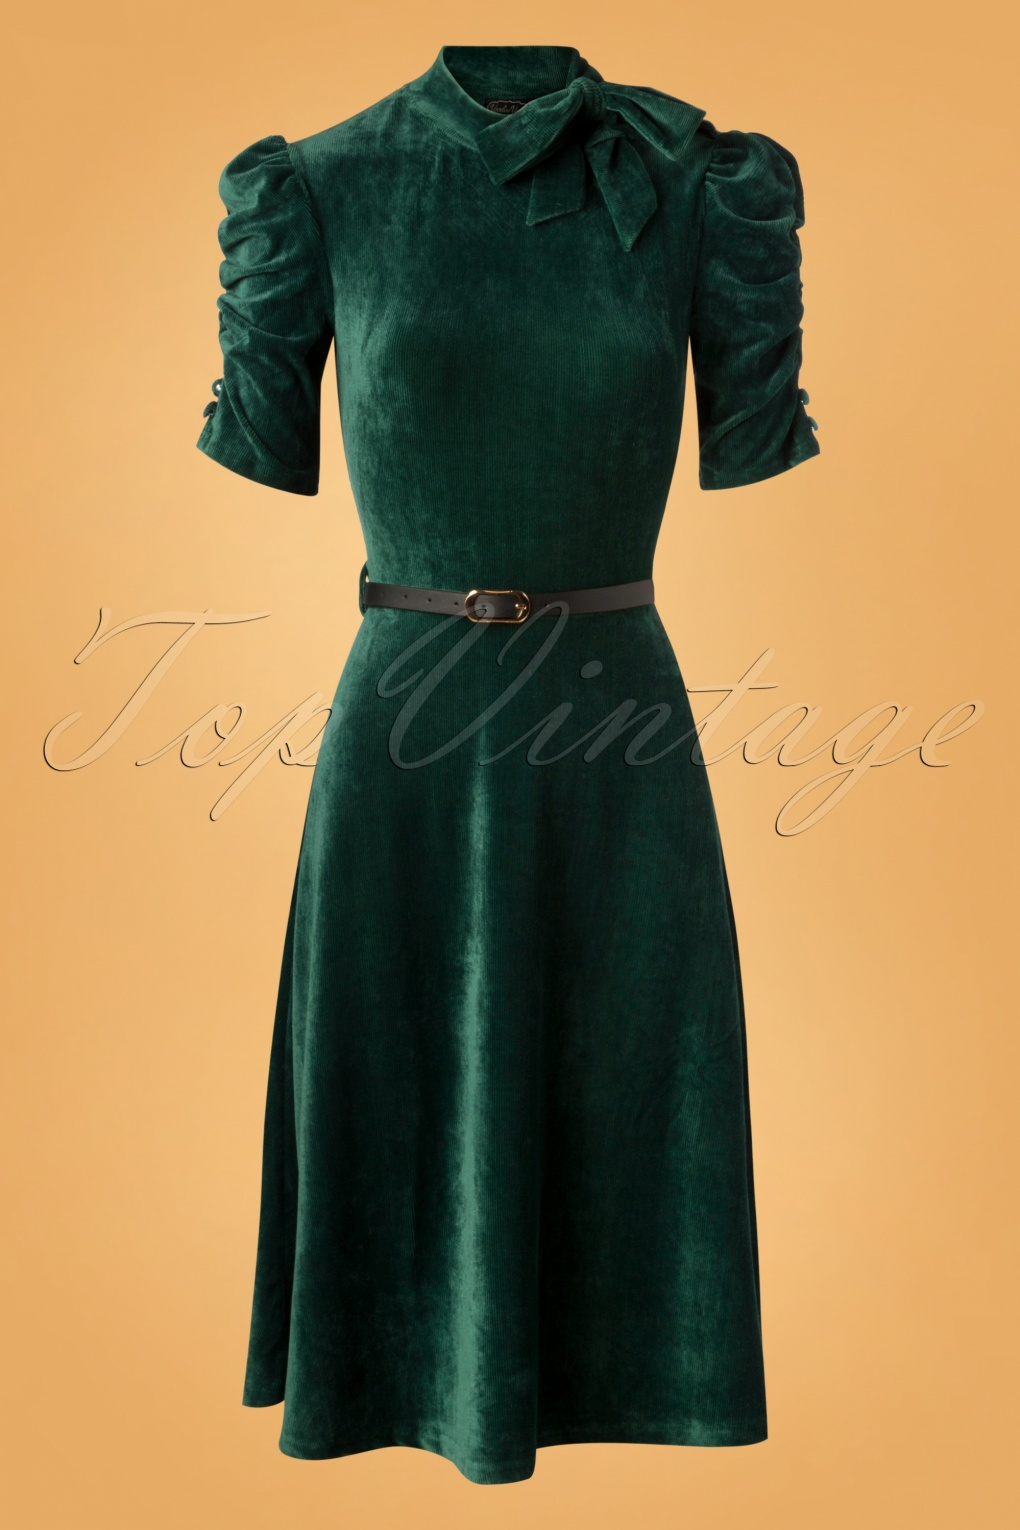 1940s Cocktail Dresses, Party Dresses 50s Penelope Velvet Swing Dress in Green £43.90 AT vintagedancer.com